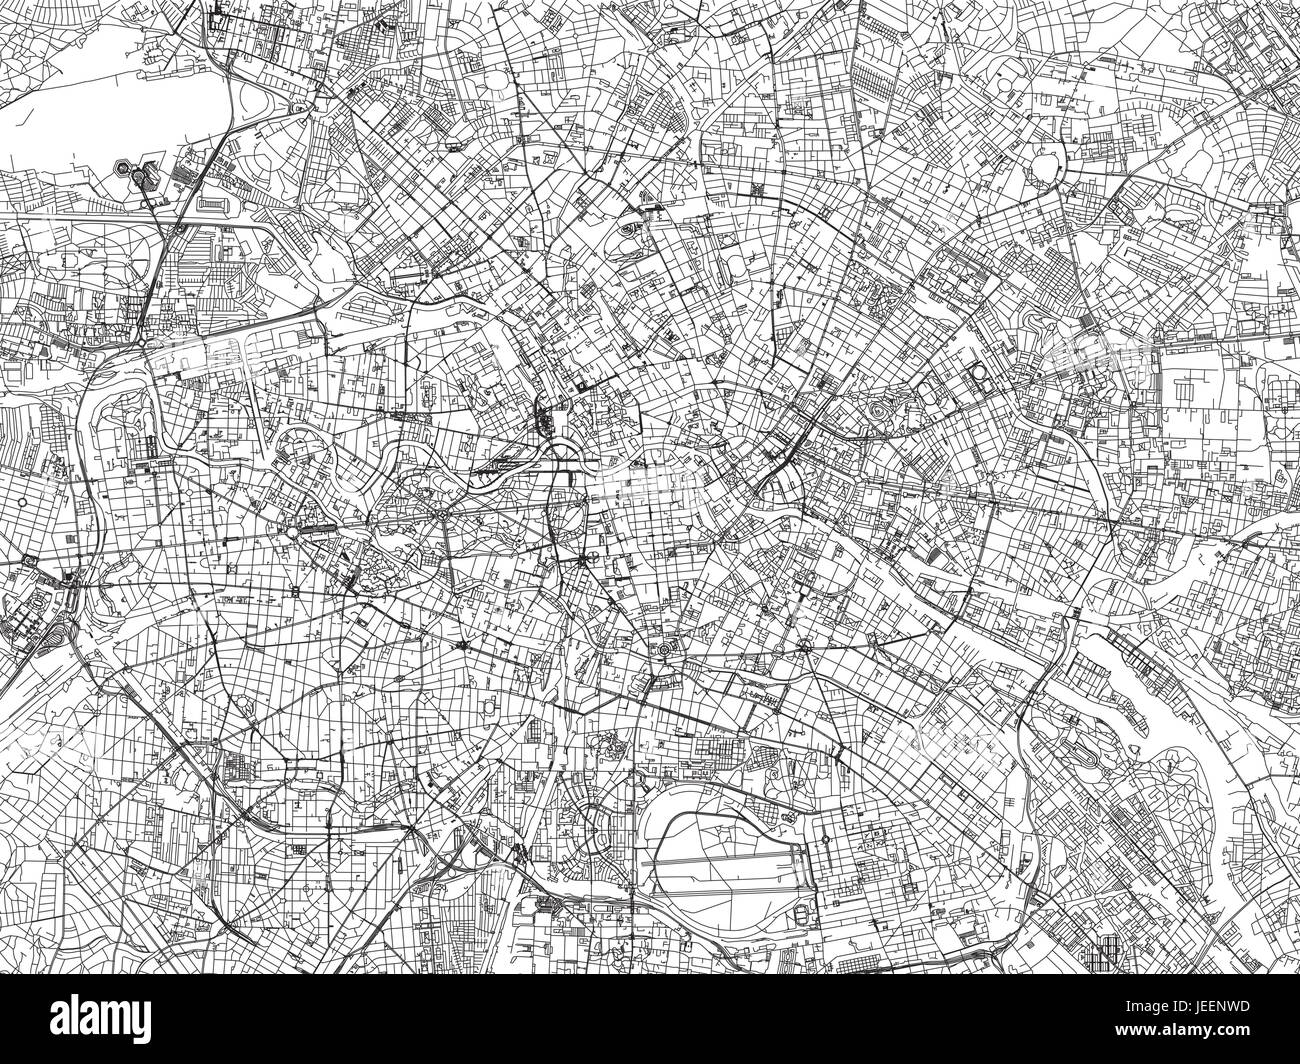 Berlin map satellite view Germany Stock Vector Art Illustration